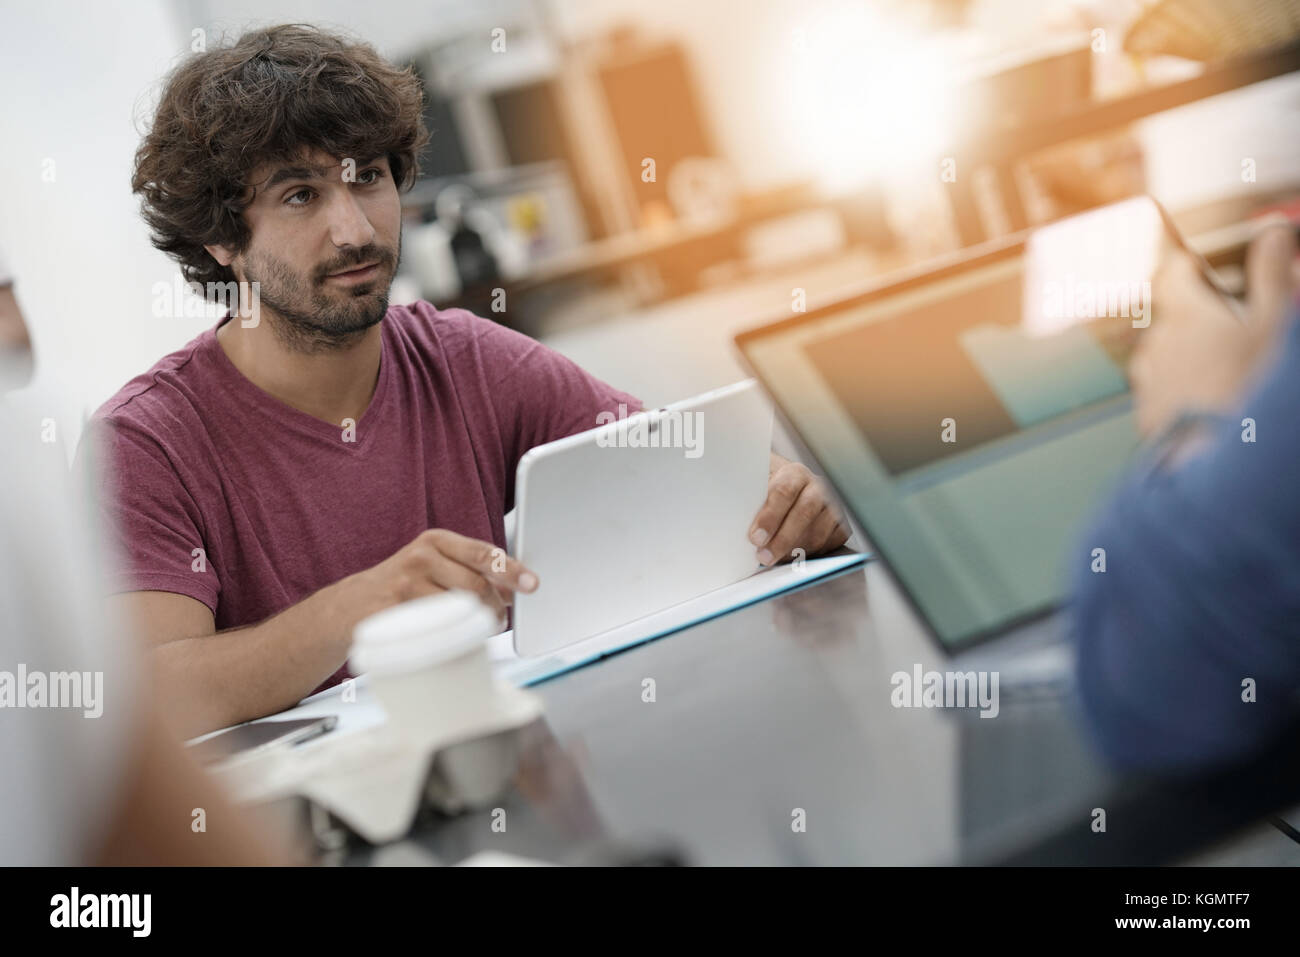 Young entrepreneur man working in office on laptop - Stock Image